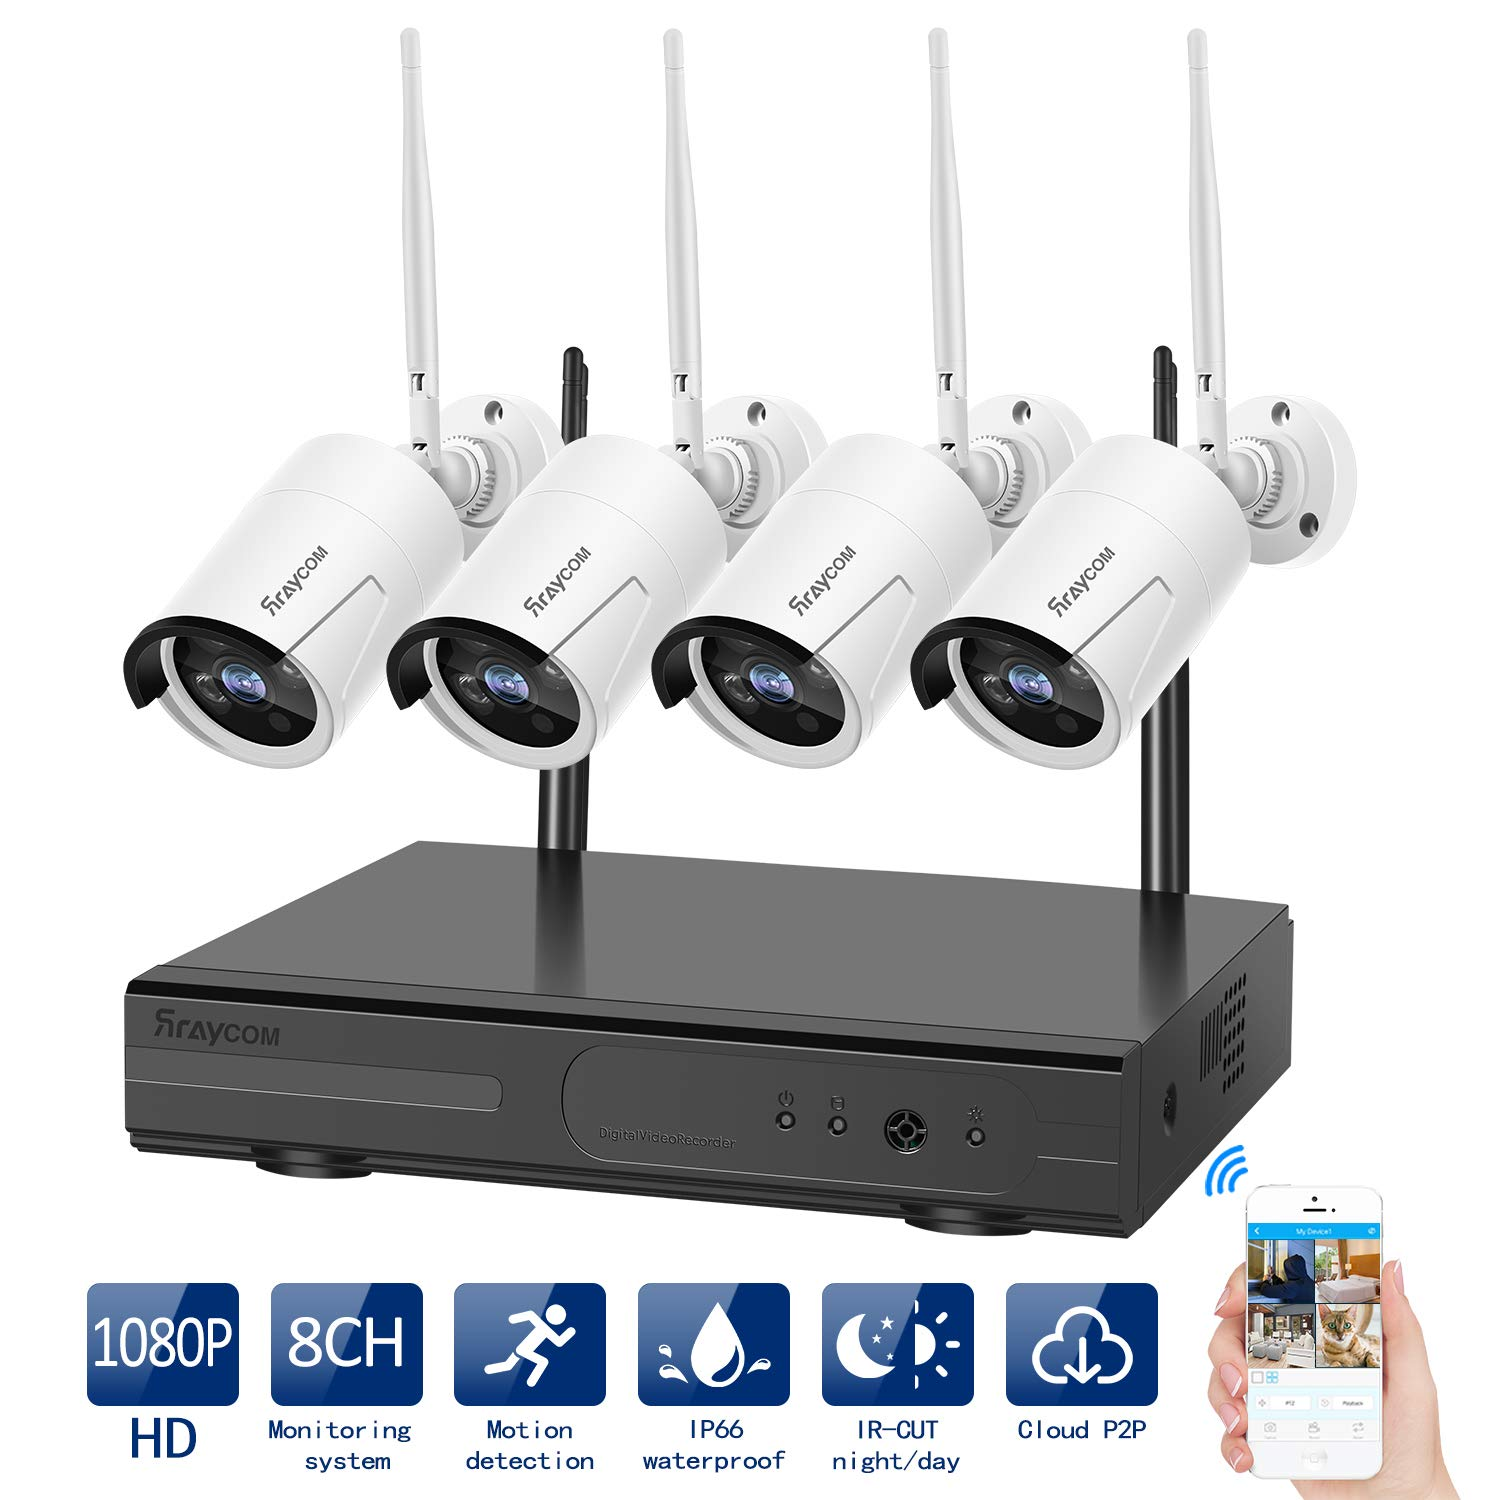 Rraycom Security Camera System Wireless,8CH 1080P NVR with 4Pcs 960P 1.3MP Outdoor Indoor WiFi Surveillance IP66 Weatherproof IP Cameras,65ft Night Vision, App Remote View, P2P,Plug Play,No HDD